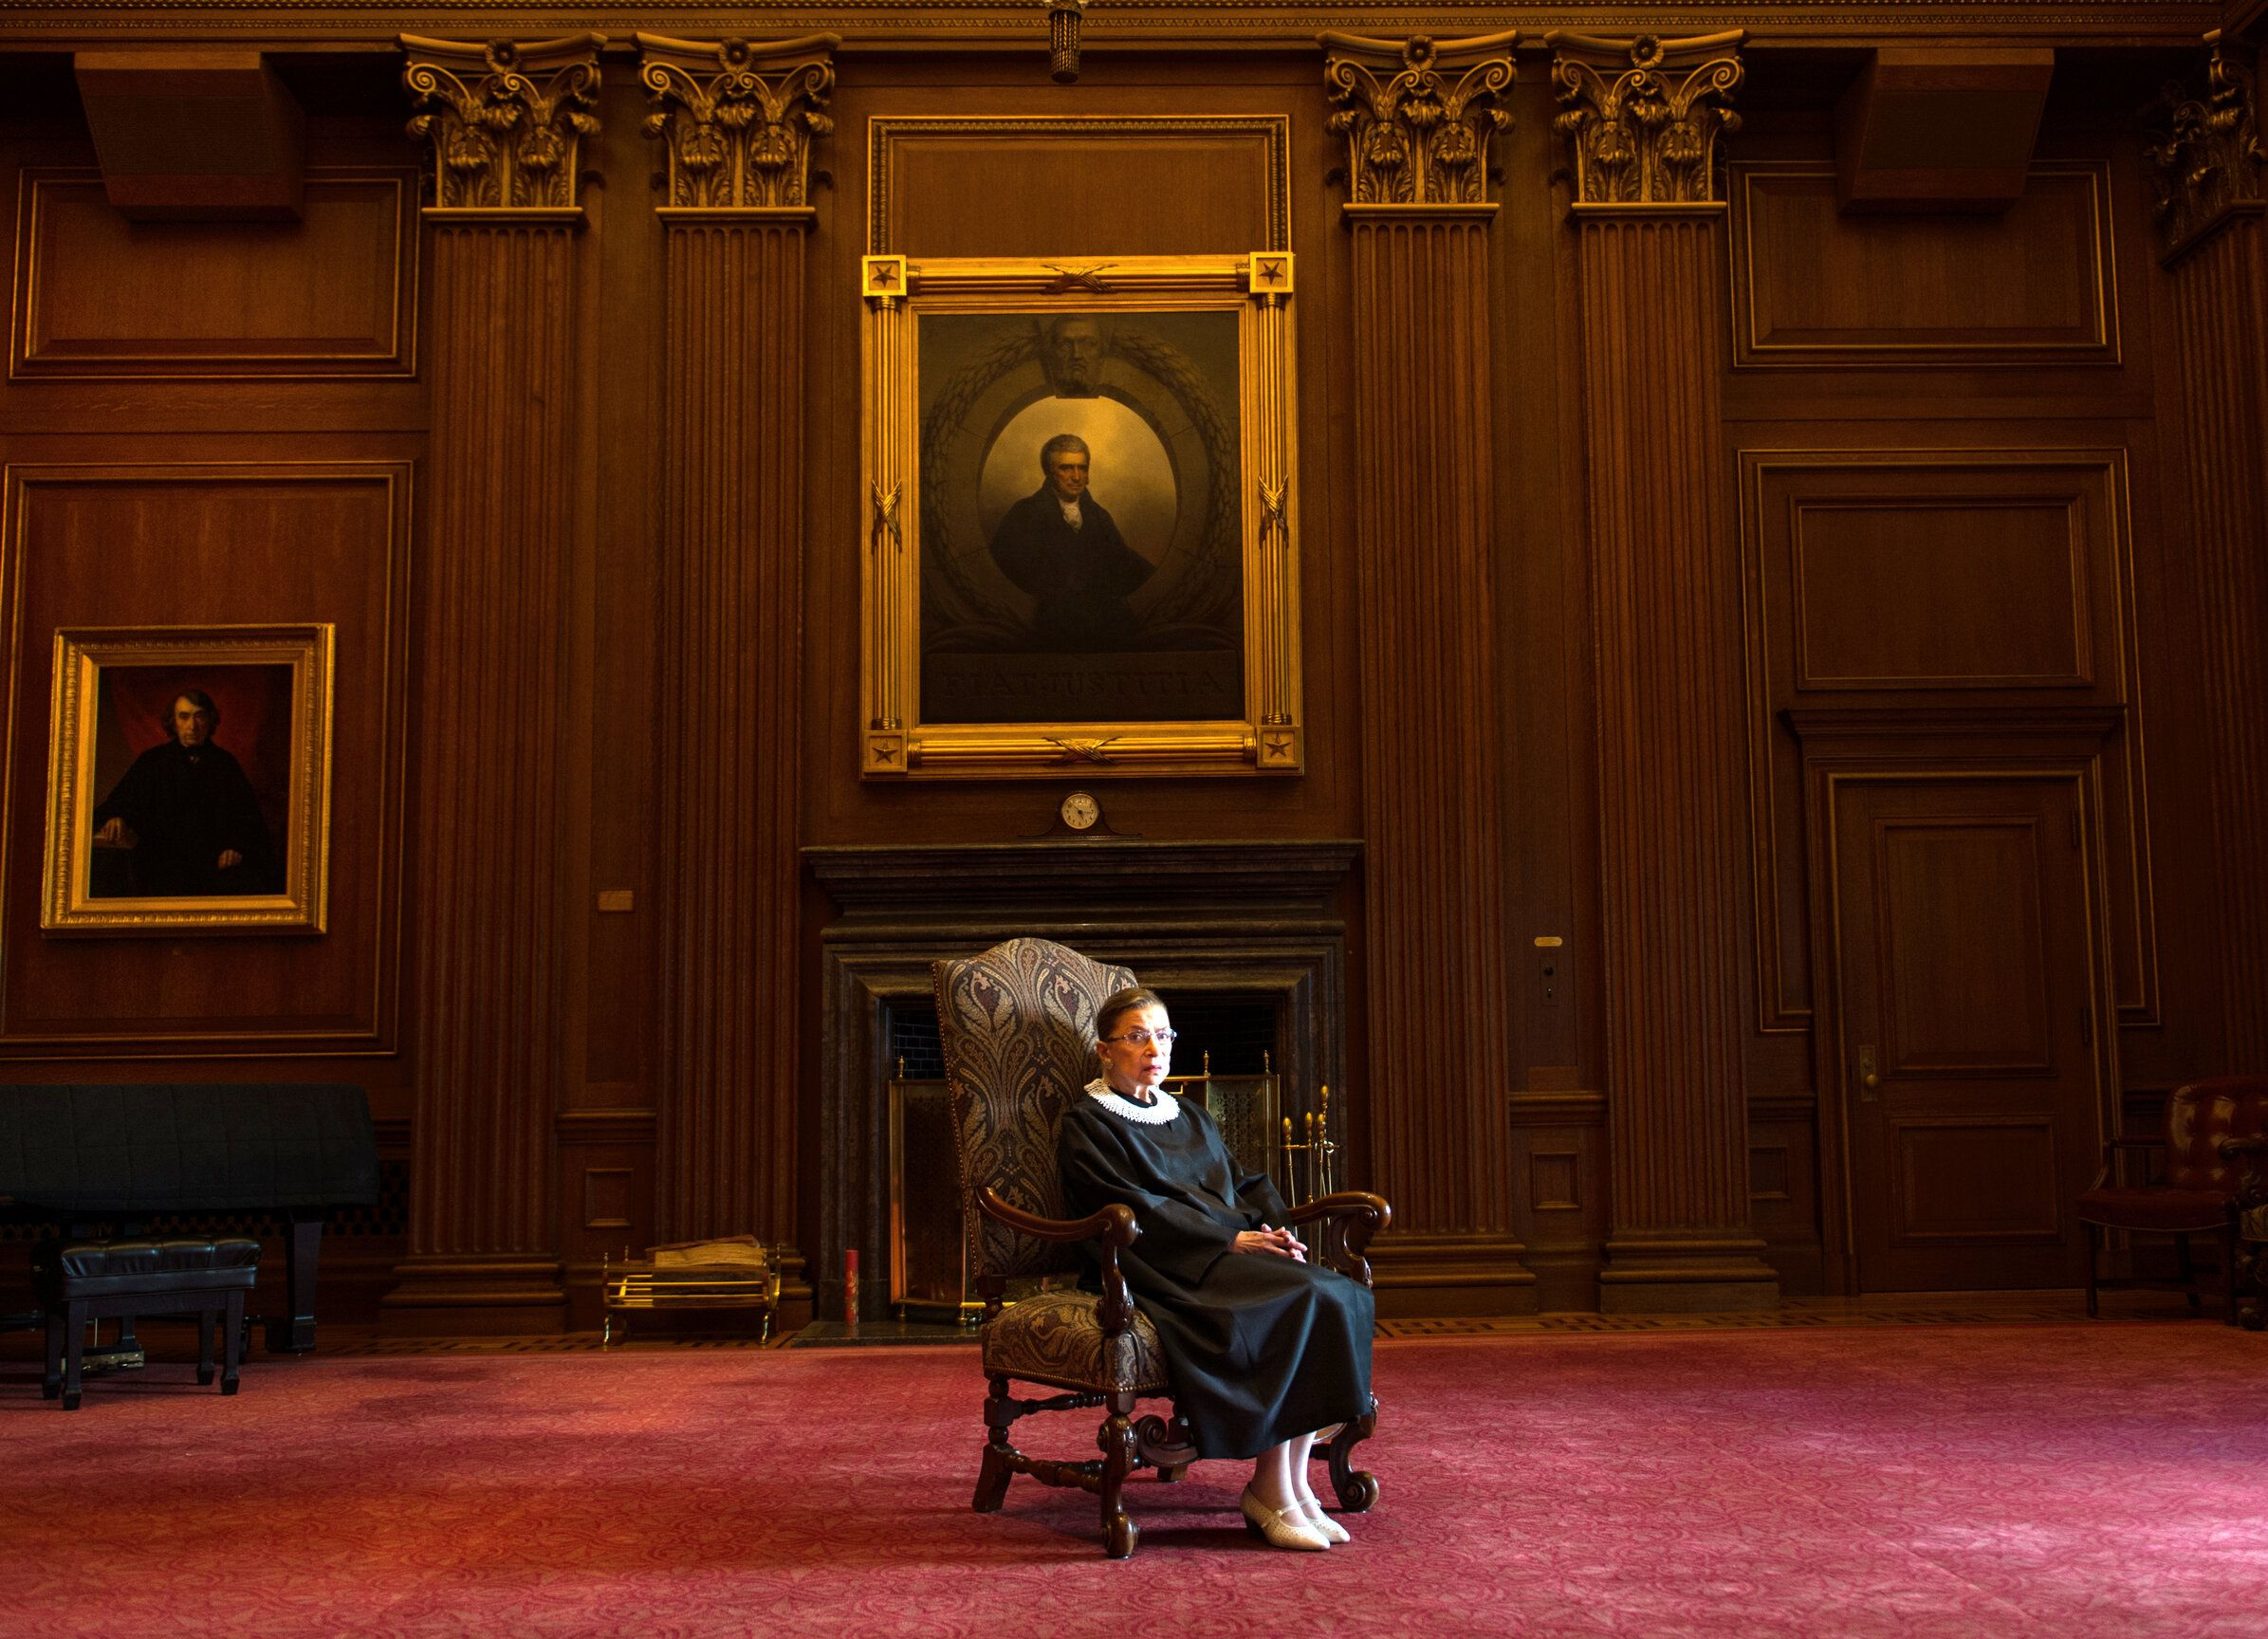 12 powerful quotes from Ruth Bader Ginsburg to be inspired by